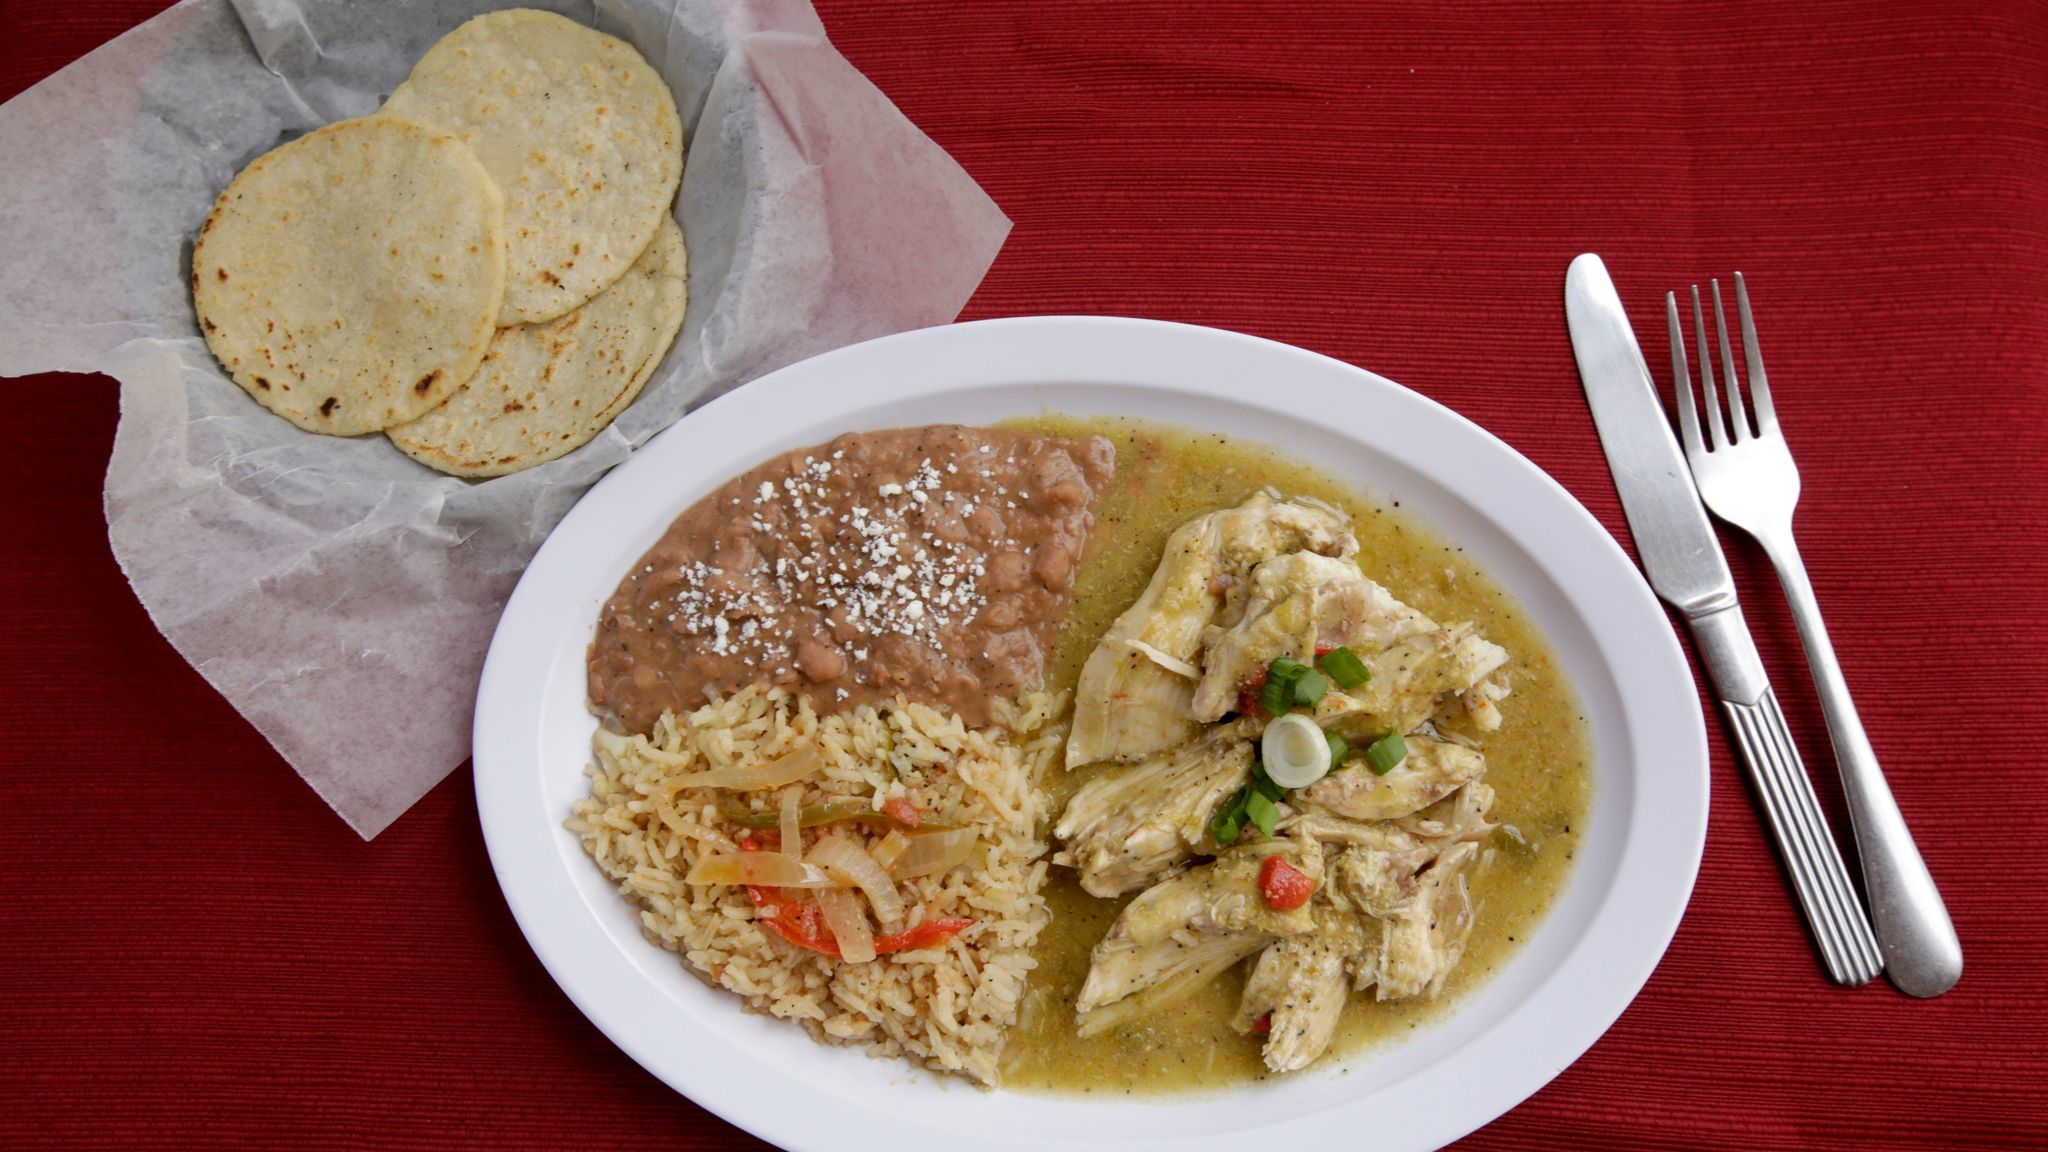 Chicken chile verde as served at Don Rogelio's Tex-Mex Restaurant in Lennox.